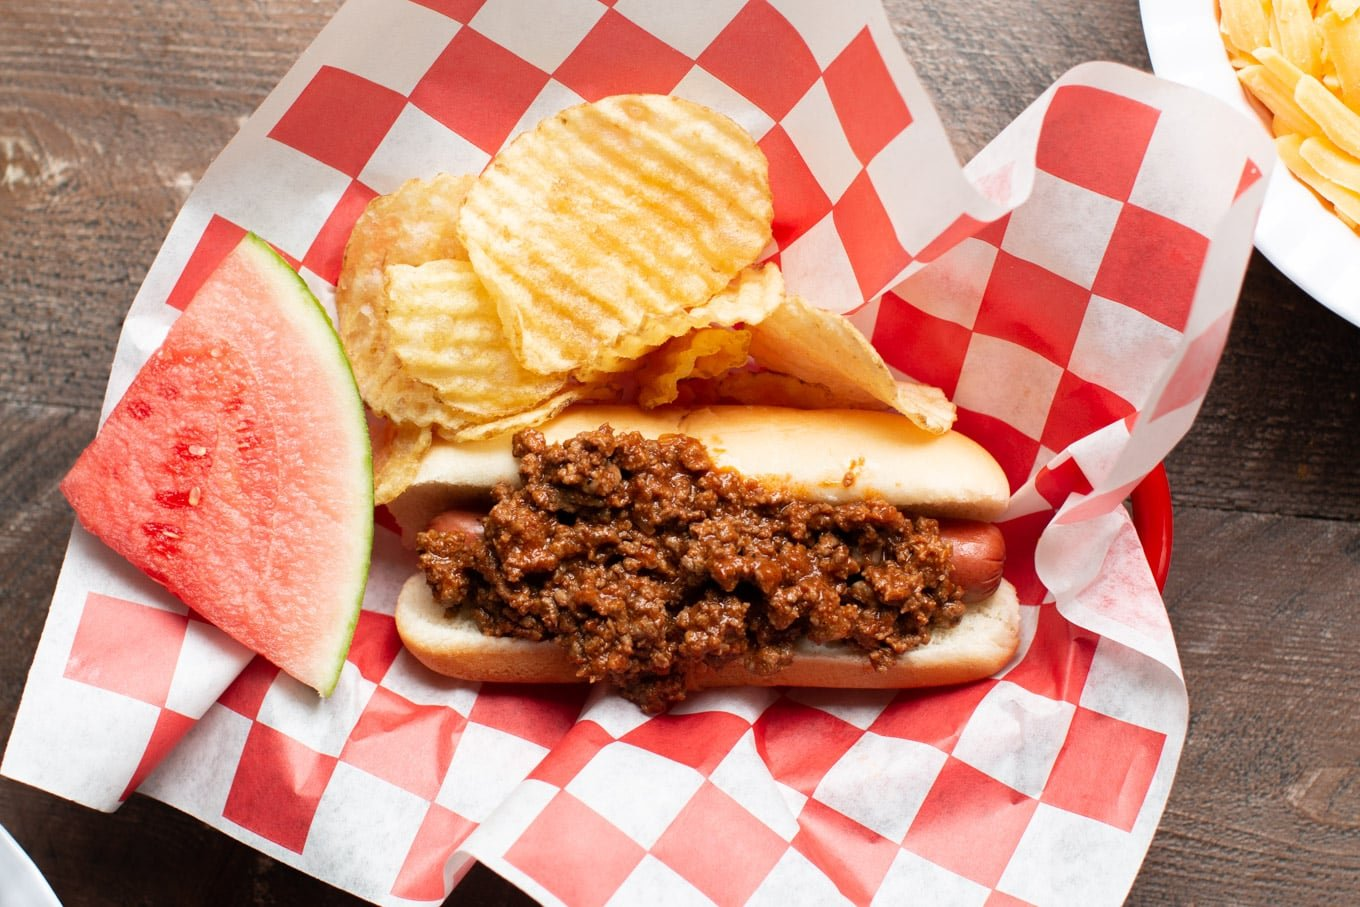 hot dog with chili on top on red and white checkered paper